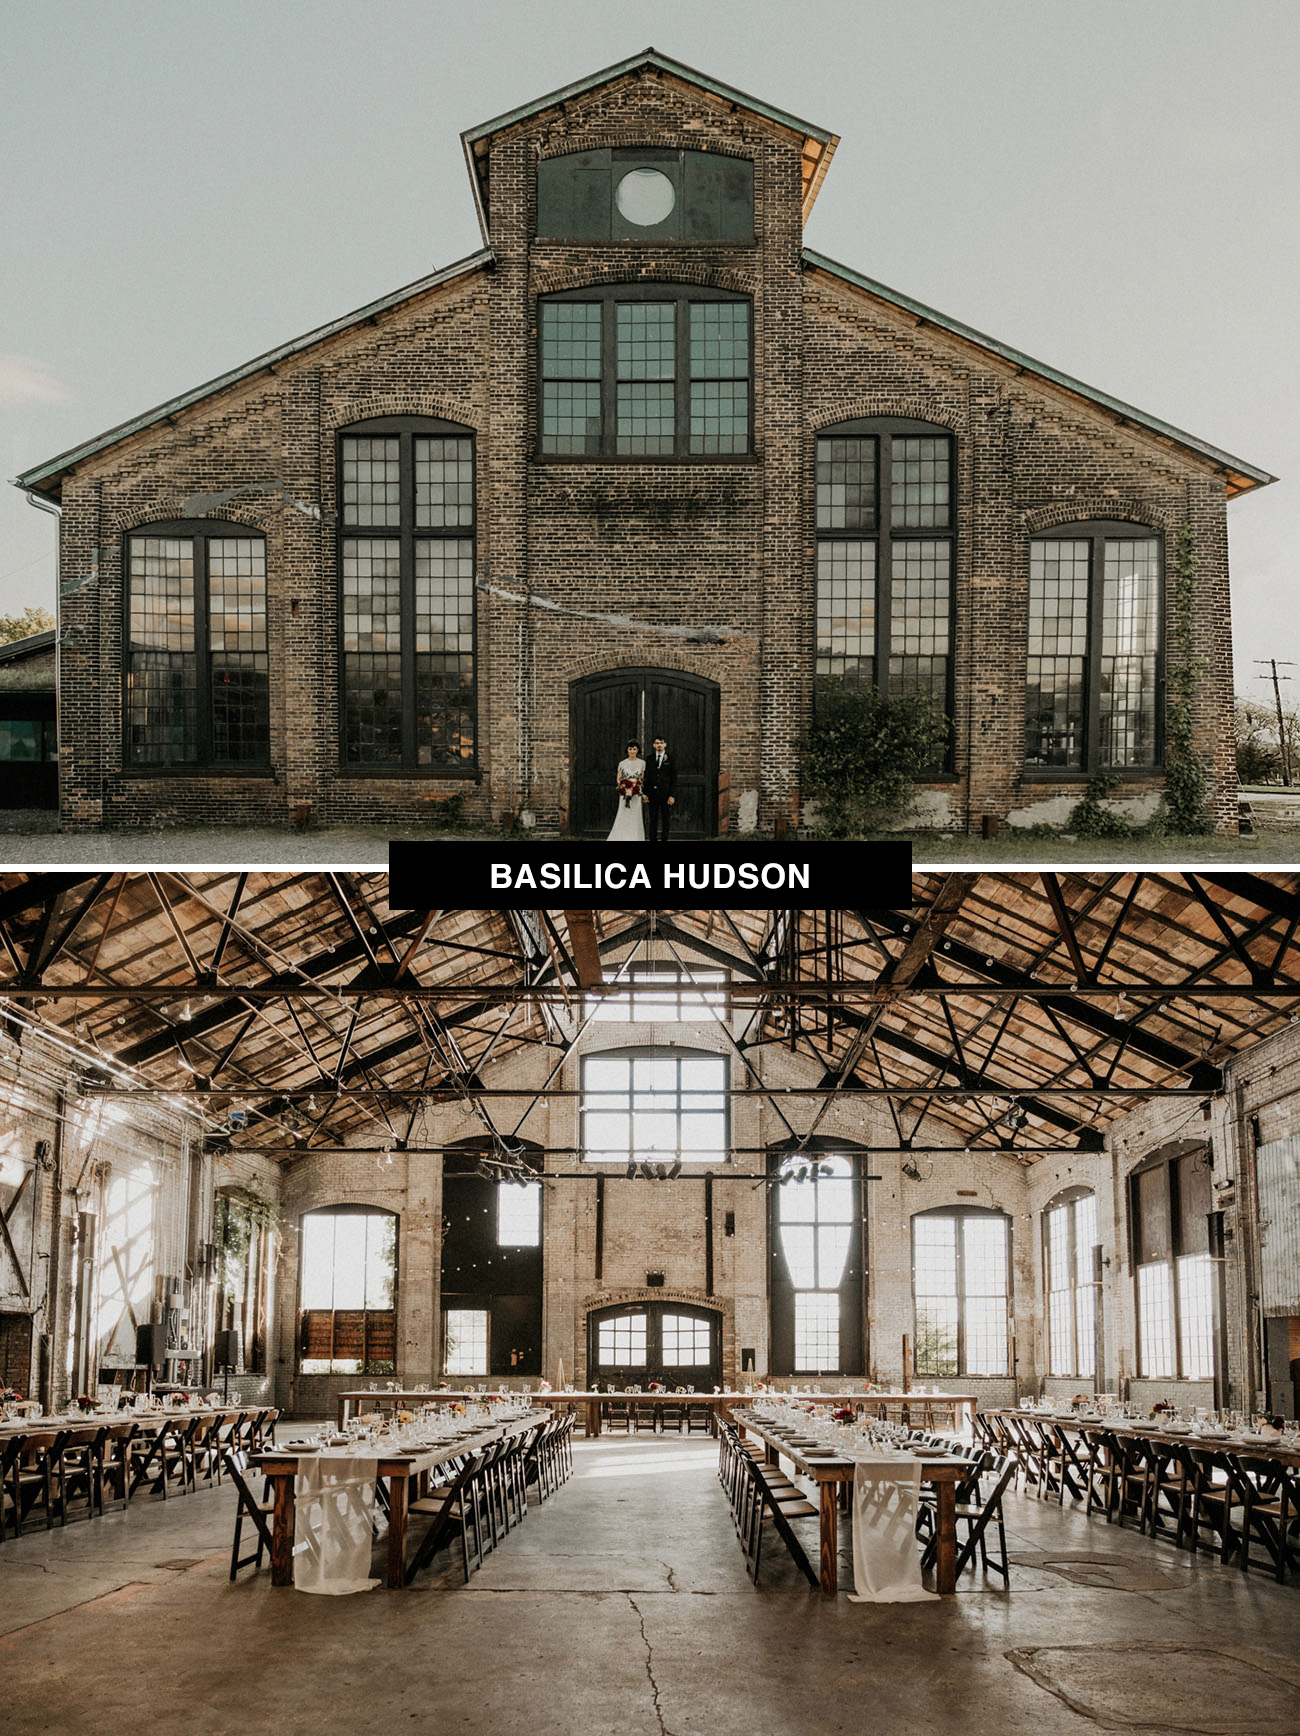 Basilica Hudson wedding venue in New York is a new place to get married with a lot of history and an industrial vibe